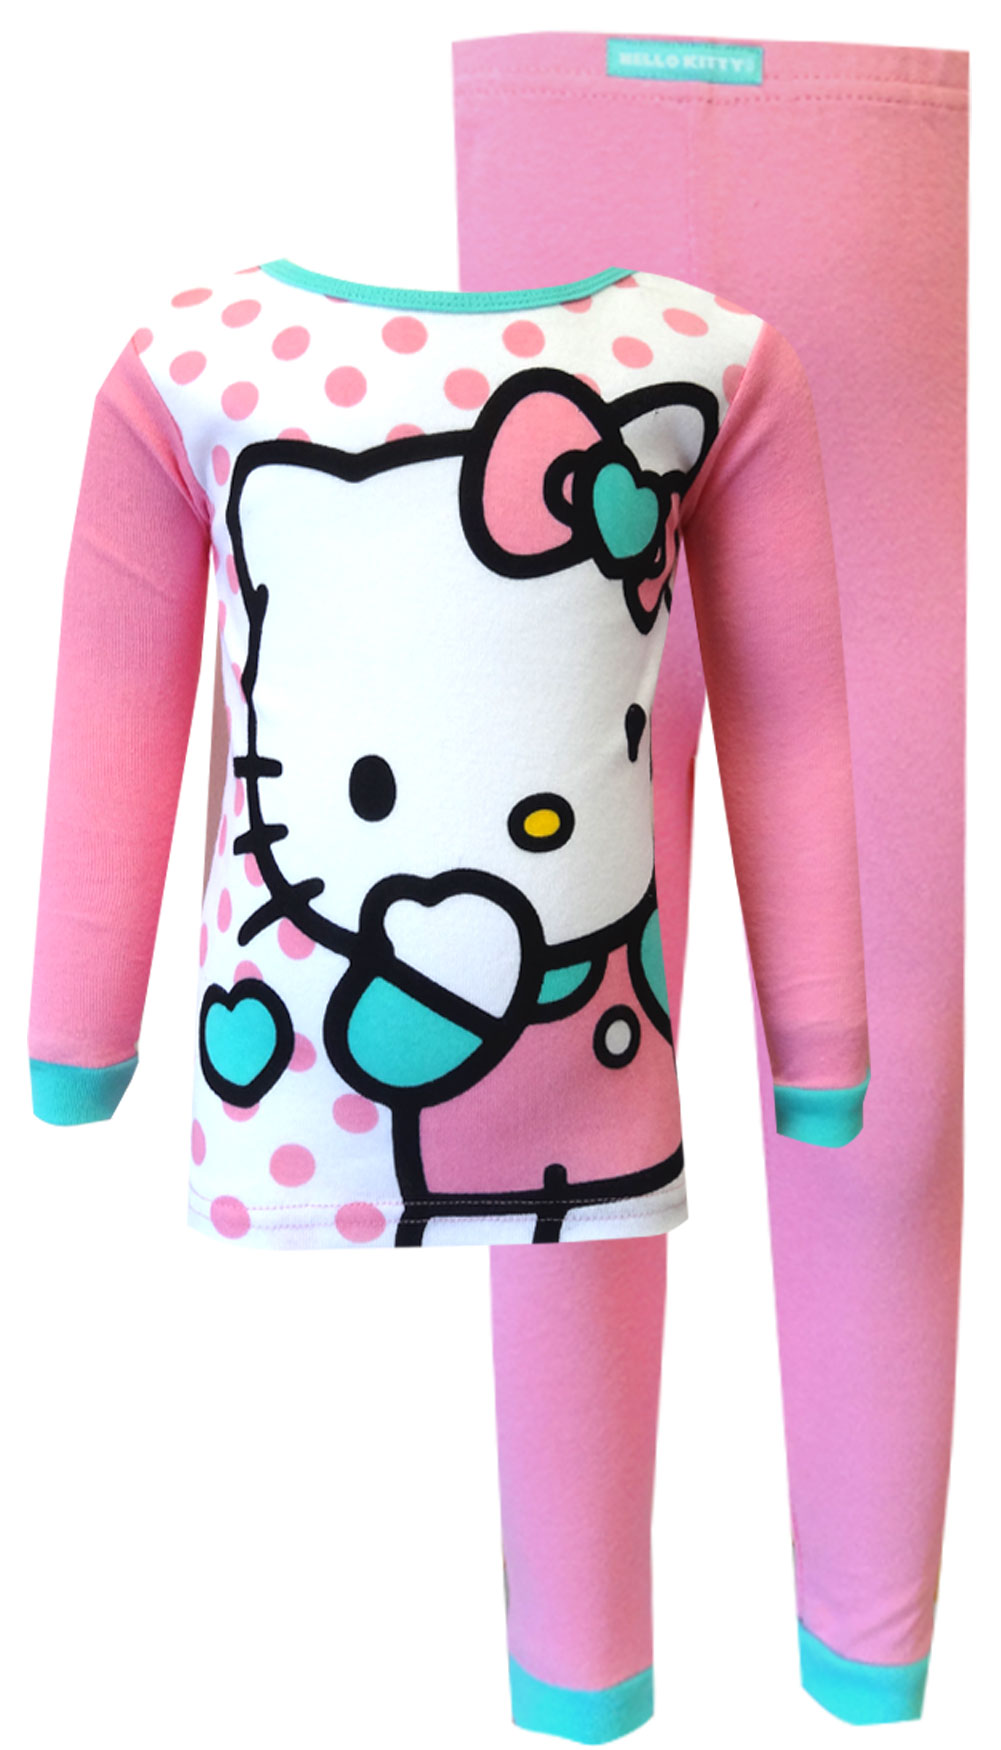 Image of Hello Kitty Pink Cotton Toddler Pajama Set for girls